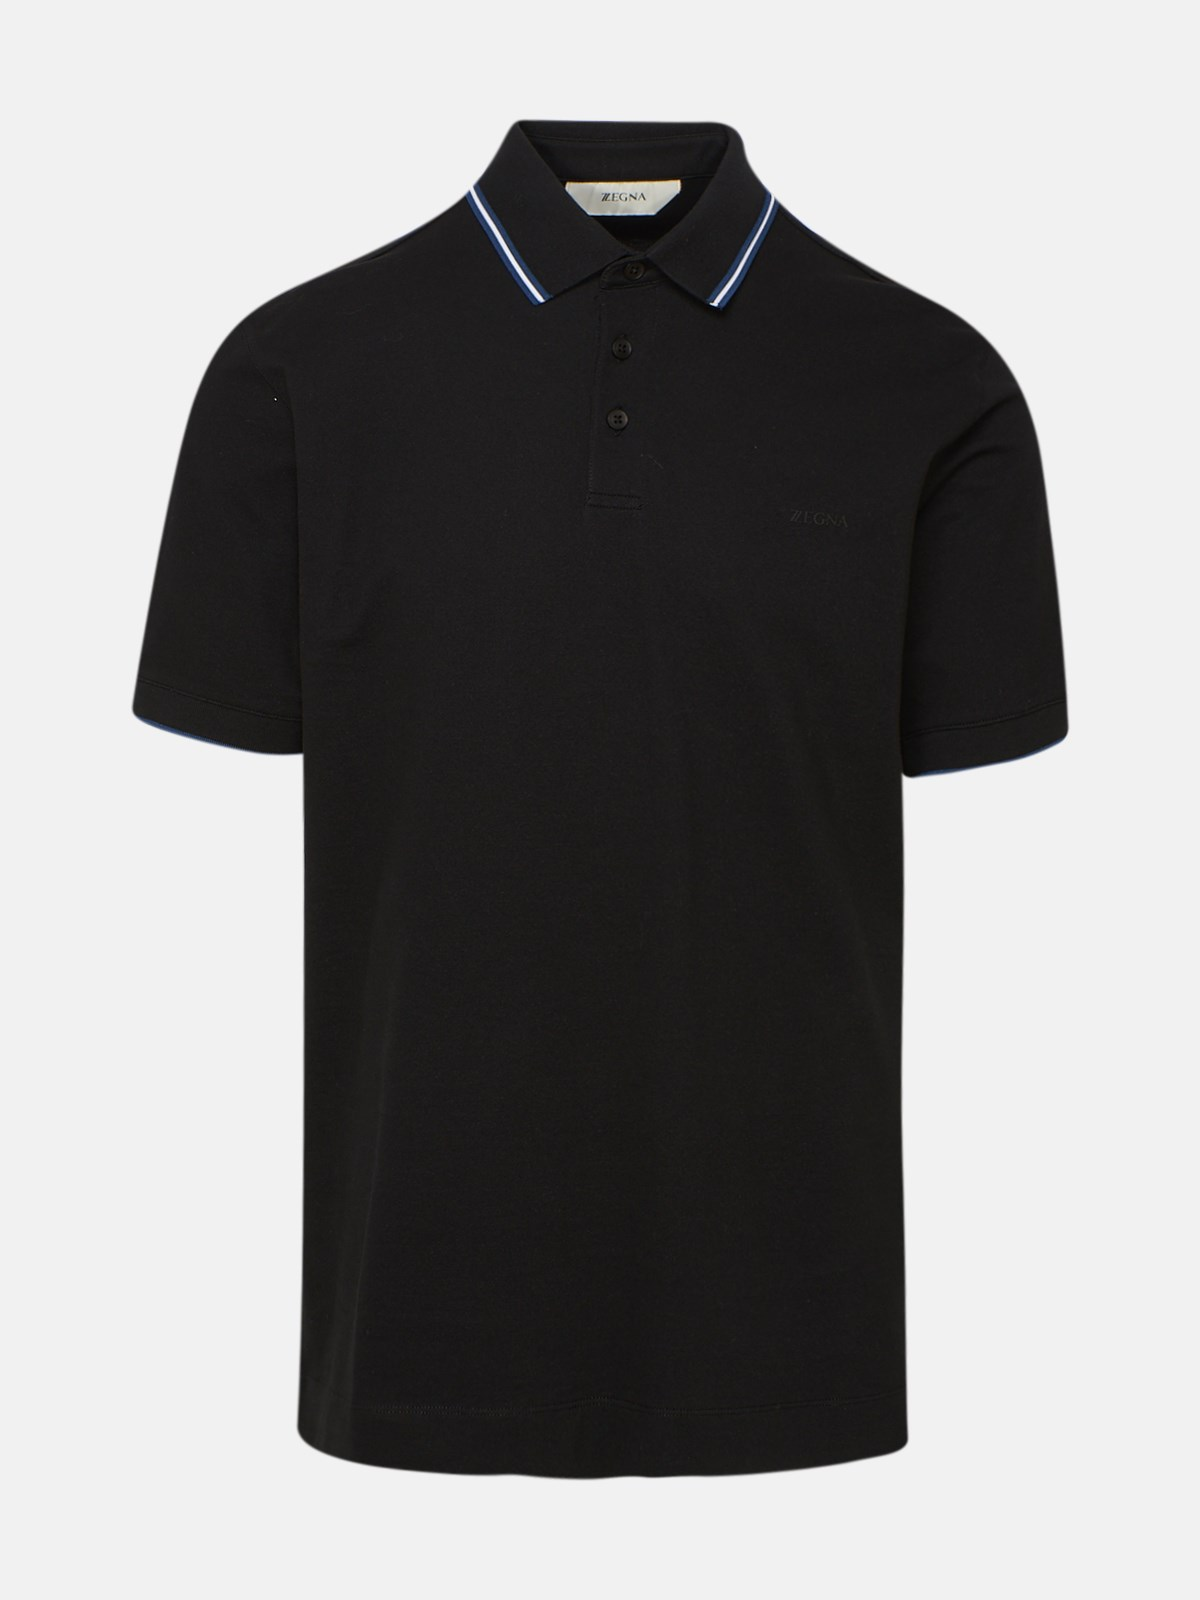 Z Zegna BLACK POLO SHIRT